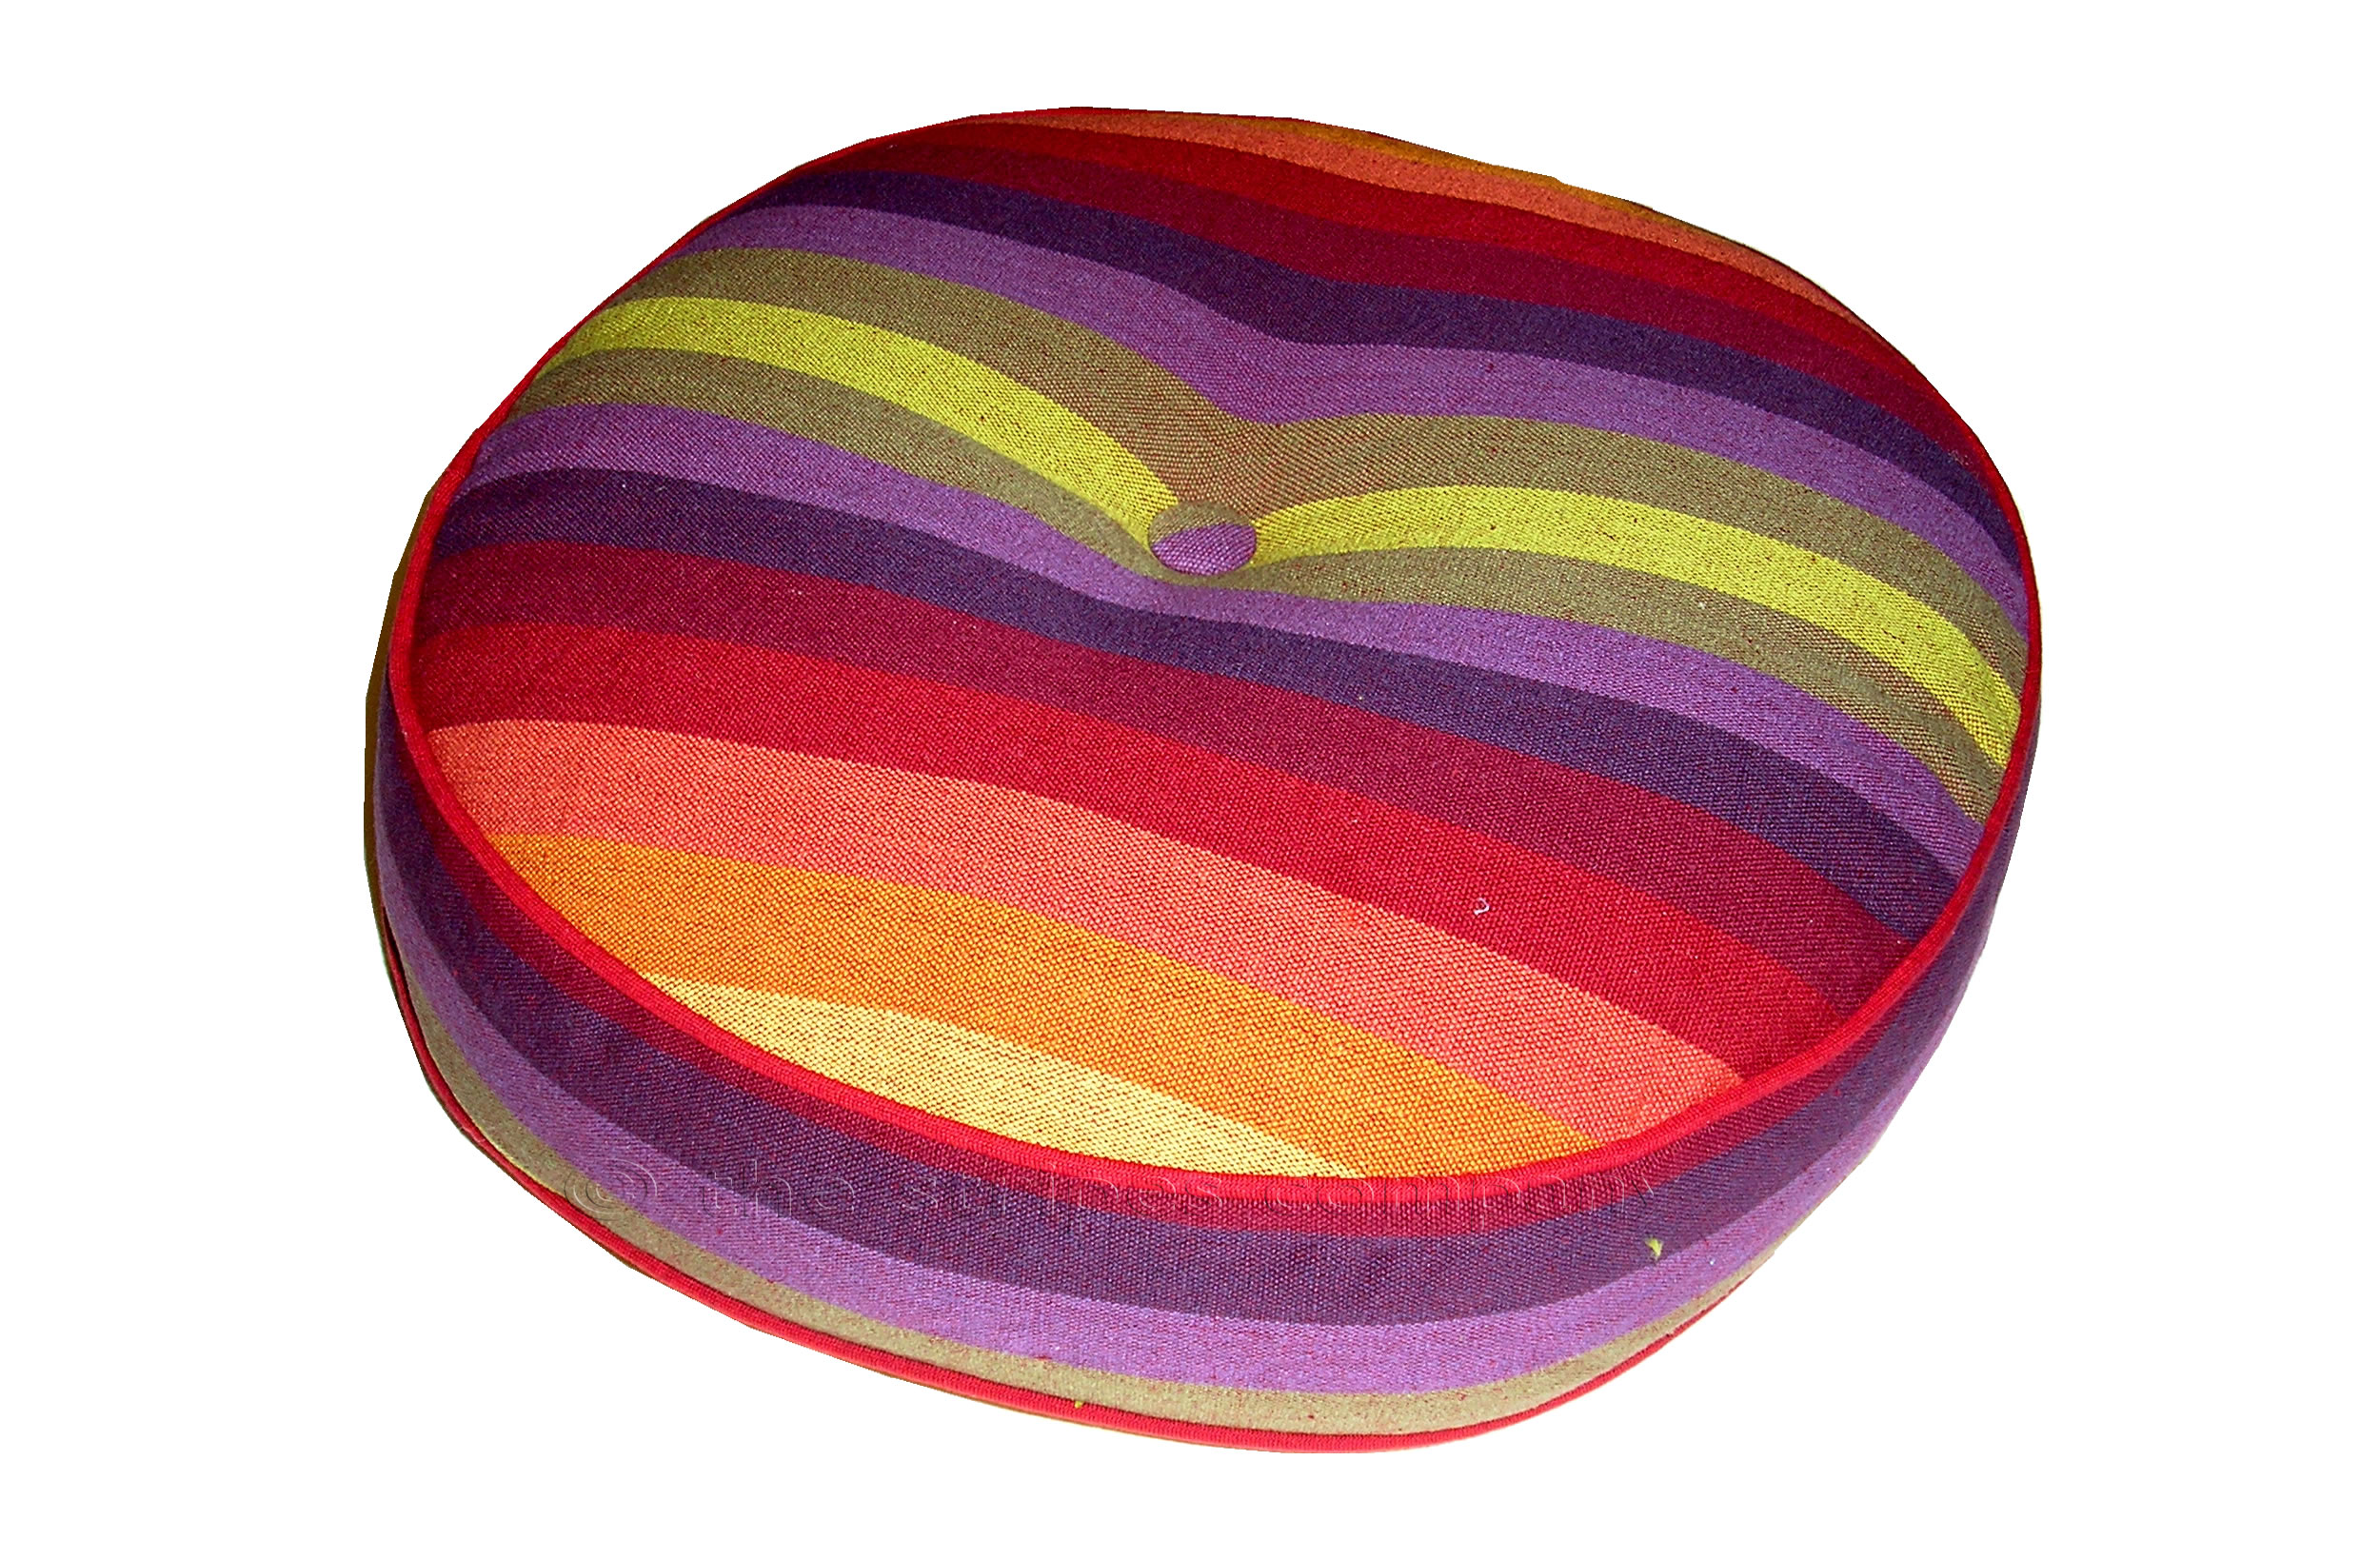 junglebar round sponge reupholster cushions small platform cushion how co to fluid rocking chair a thickening pads pad